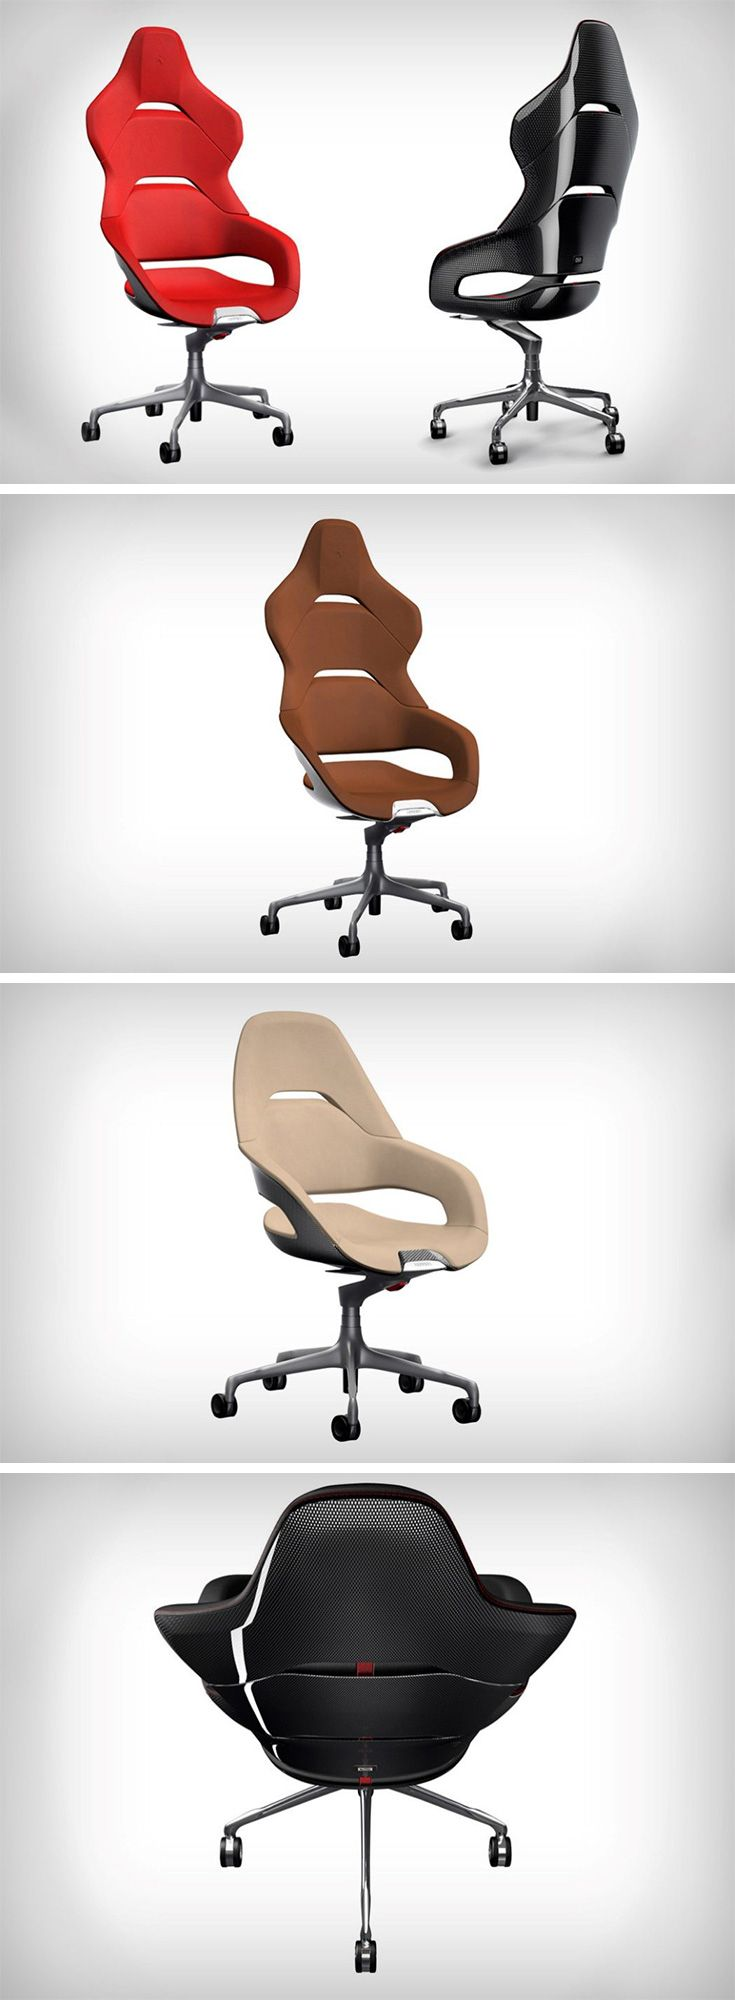 If office chair racing was a legit game, what better than to do it with Ferrari's new desk chair series?? These superior looking chairs come from the design team at Ferrari and Poltrana Frau, bringing some adrenaline from the racetrack to the workplace.